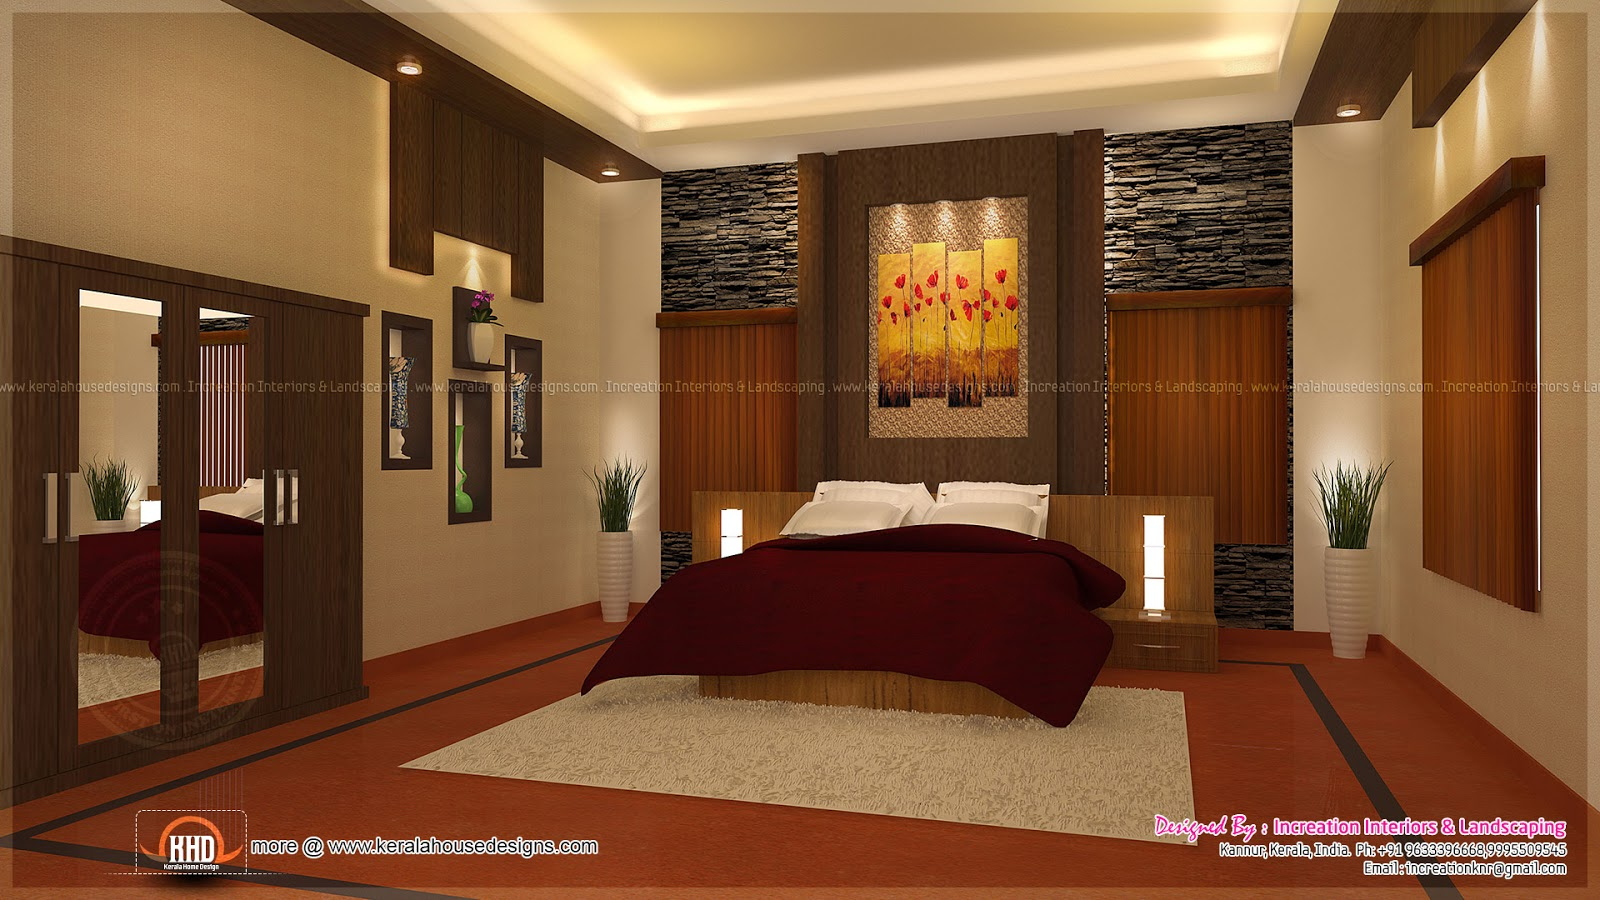 House interior ideas in 3d rendering kerala home design House design inside